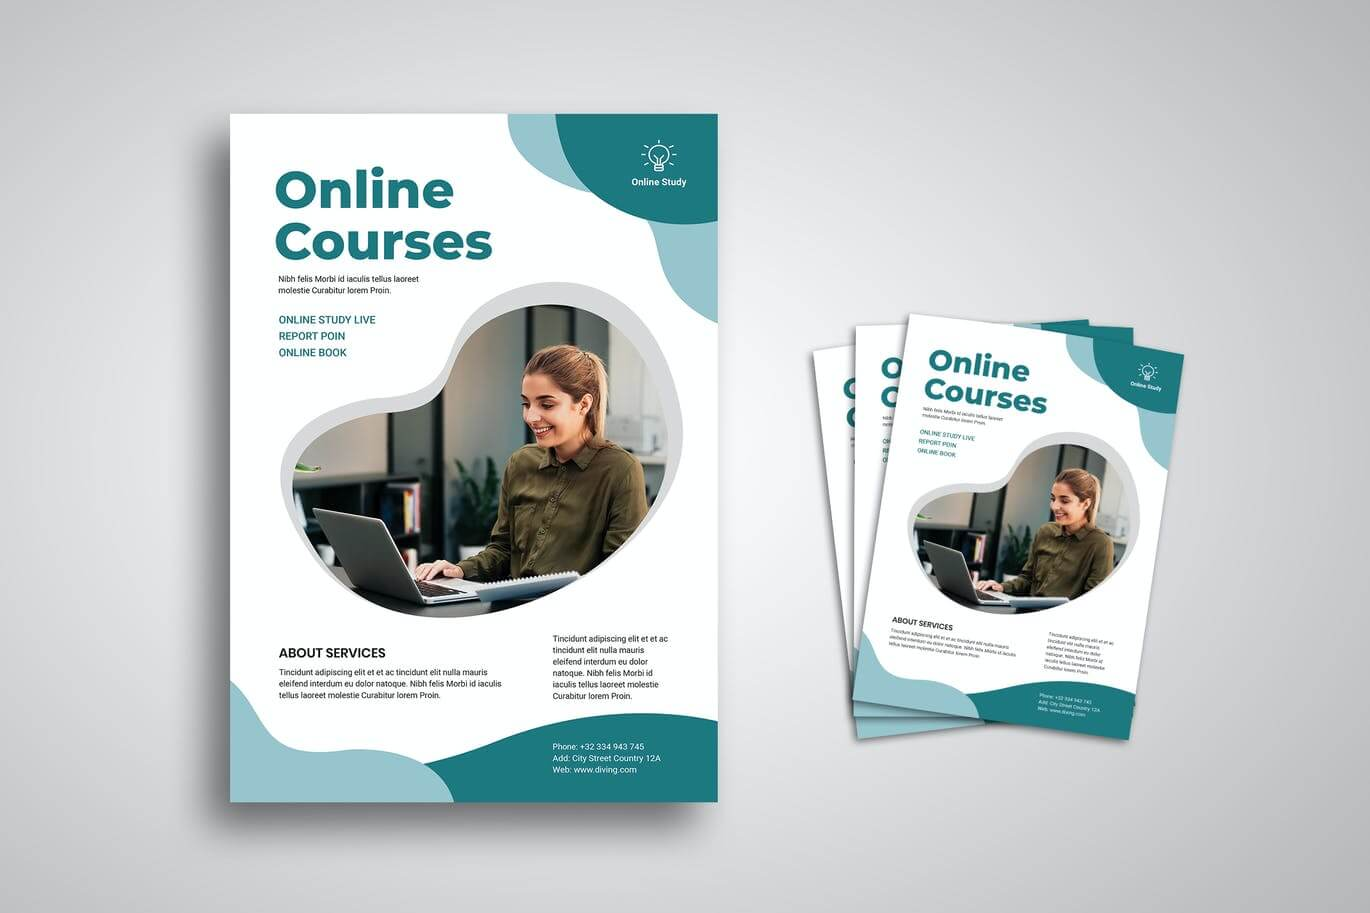 Online Courses Flyer Promo Template (1)